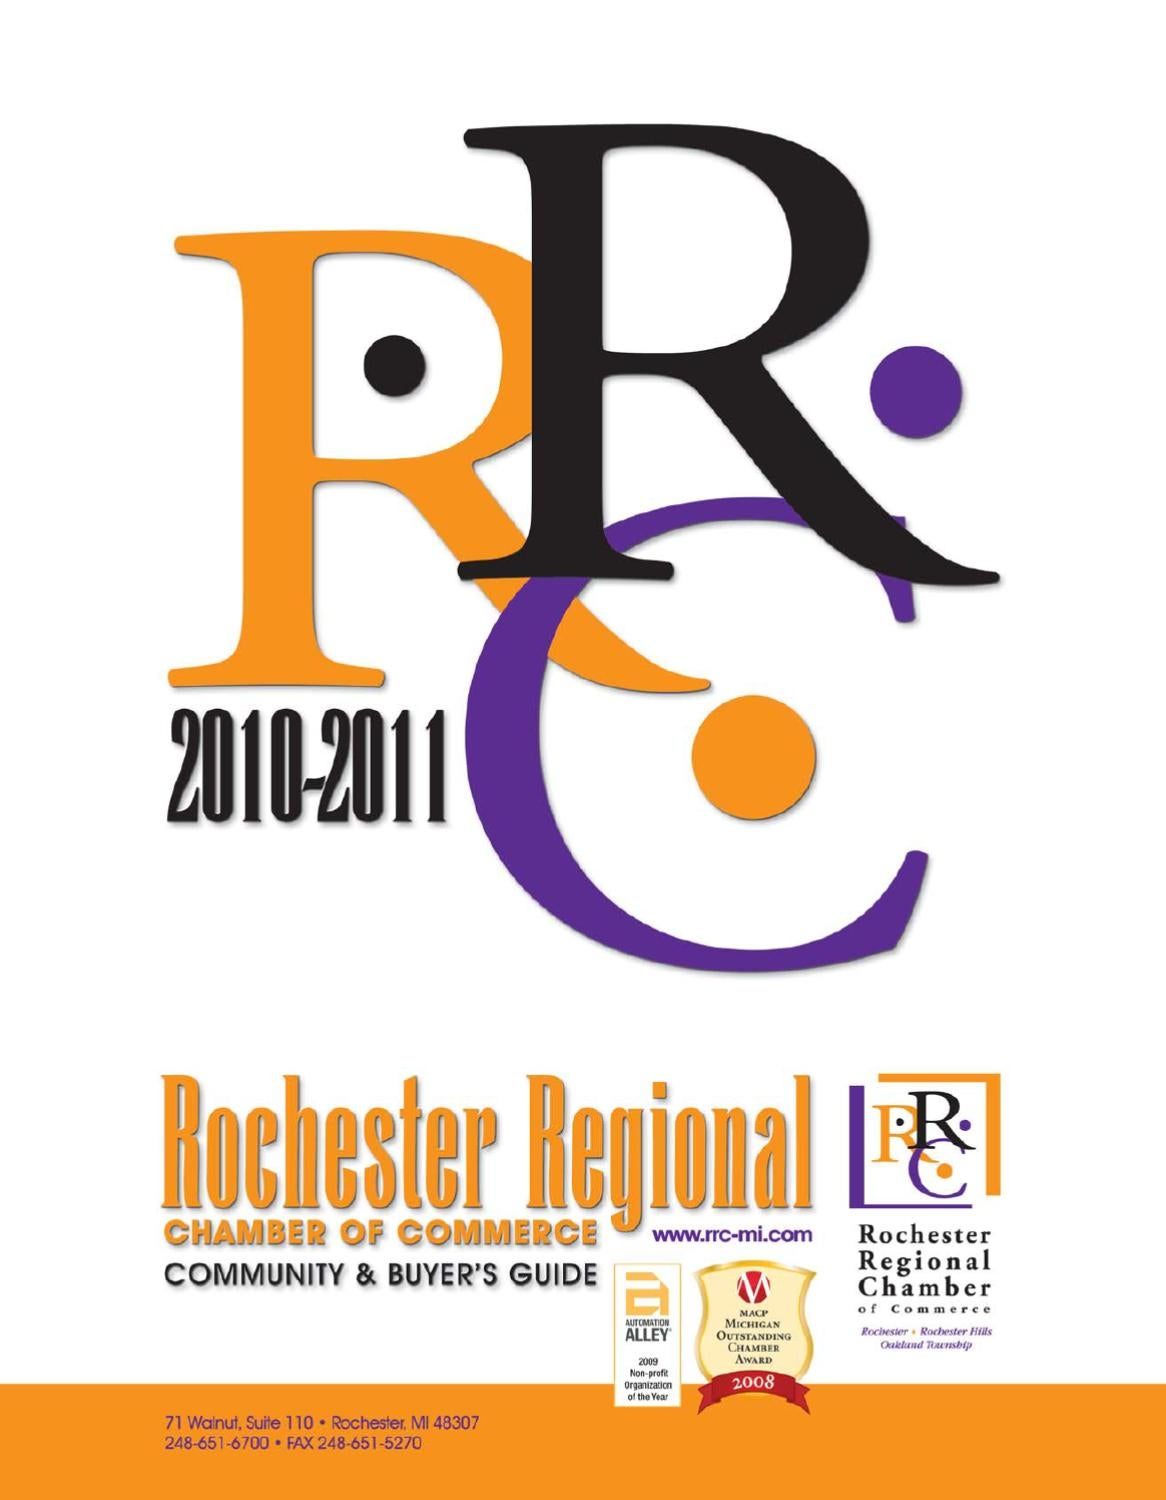 Rochester regional chamber of commerce by townsquare publications rochester regional chamber of commerce by townsquare publications llc issuu fandeluxe Gallery